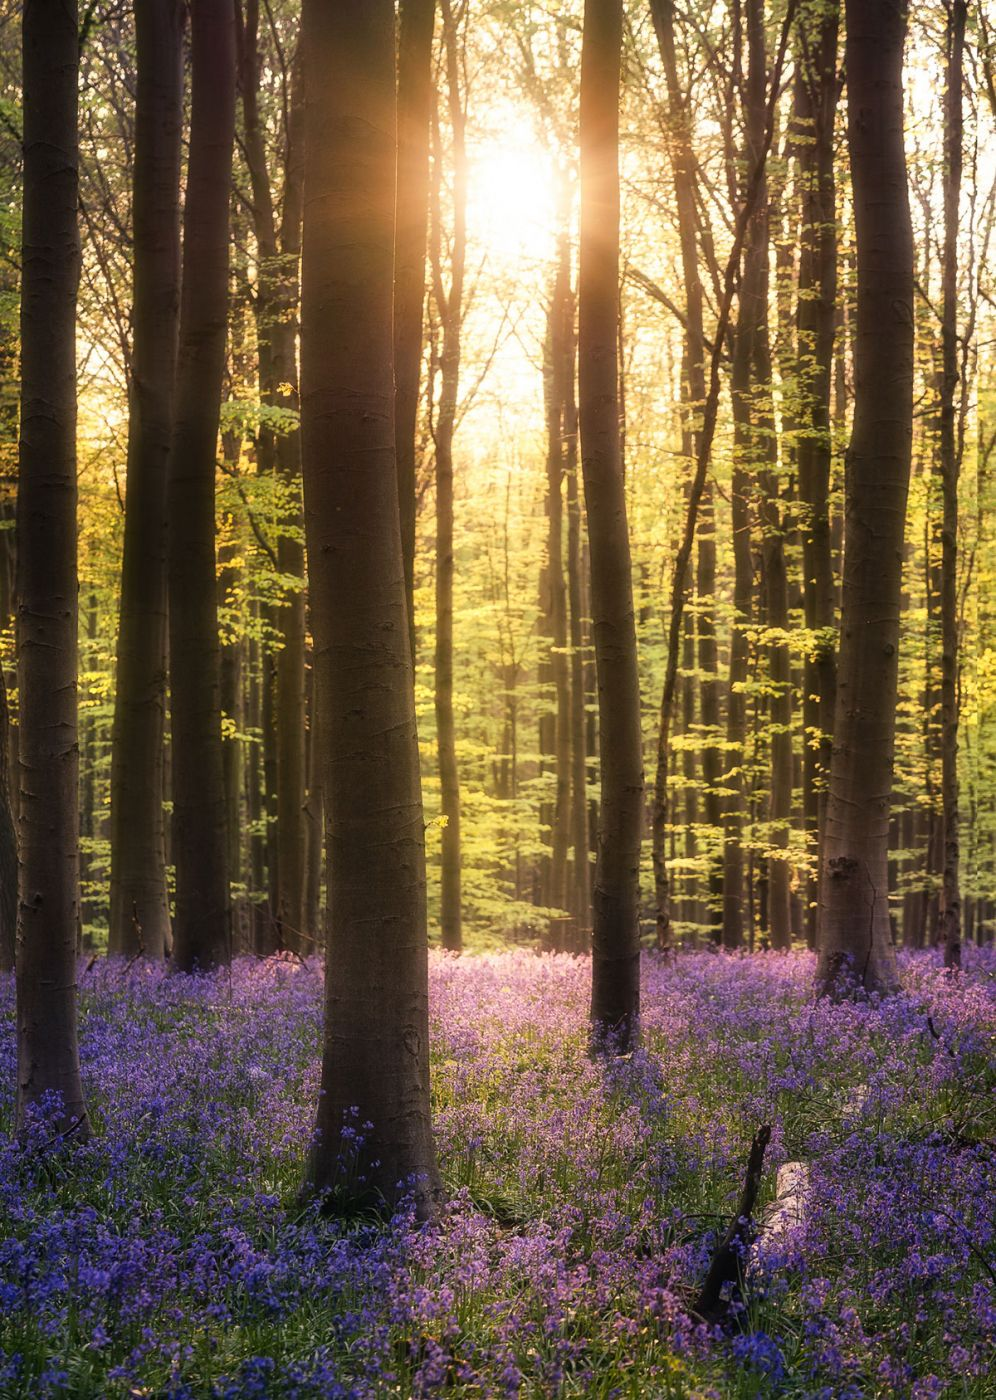 5 tips for photographing Hallerbos